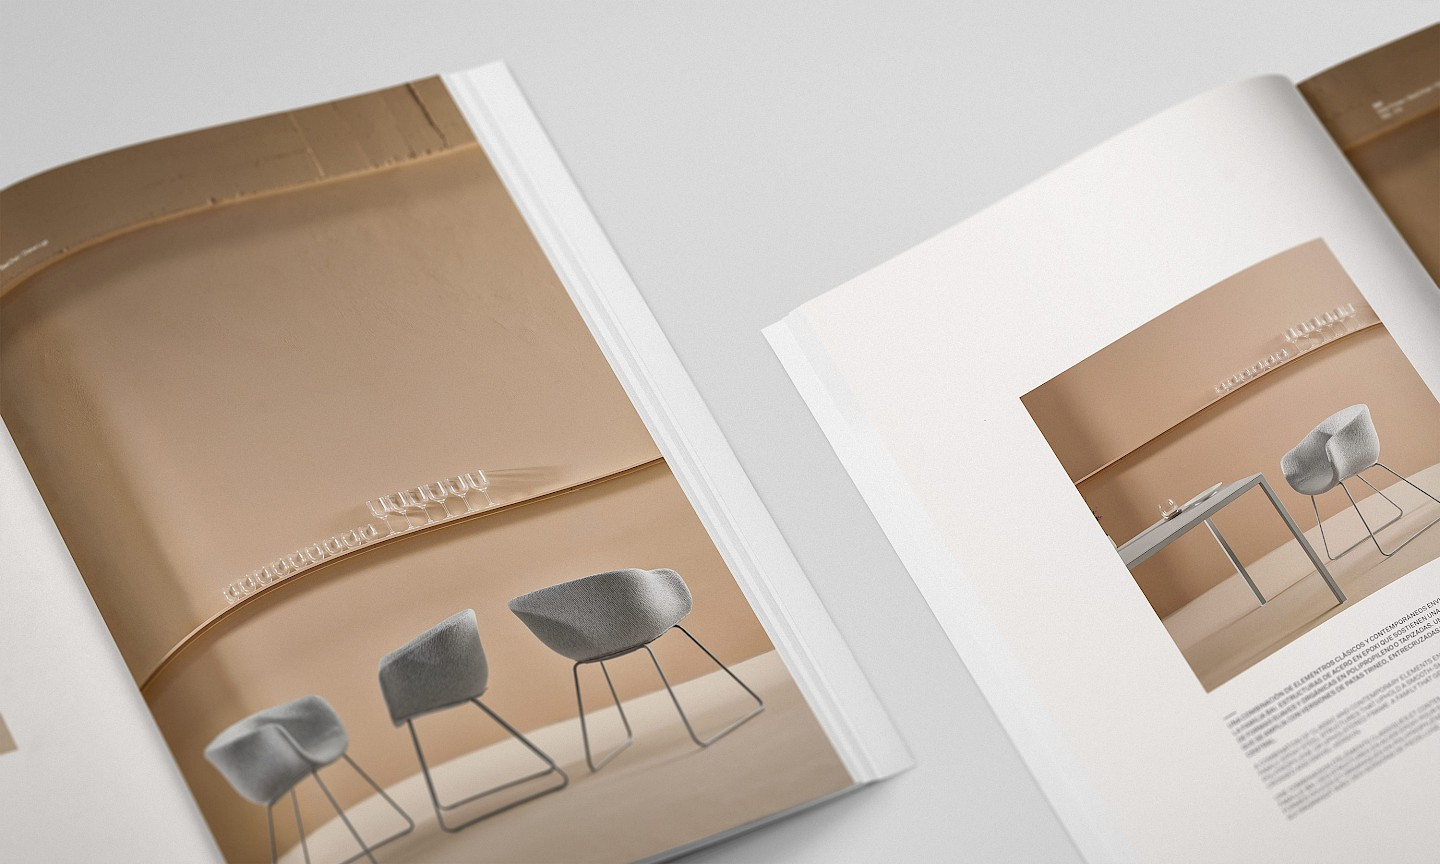 branding print direction 02 ondarreta art lifestyle photo fashion spaces interorismo digital